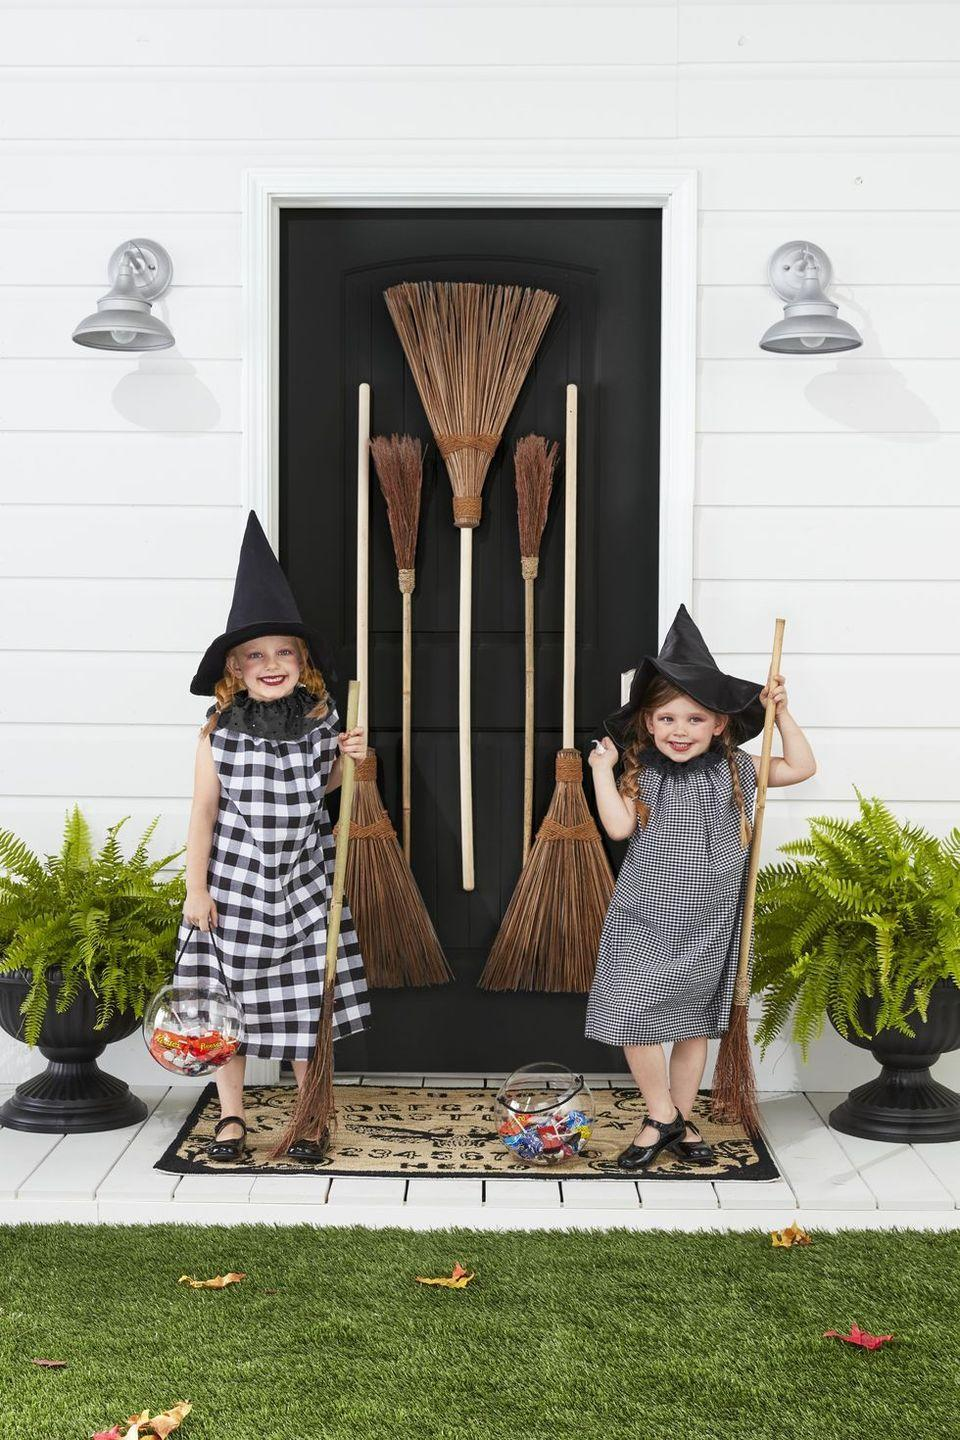 """<p>These country-chic witches have us giggling. Get your kids ready to cast some spells in no time with this last-minute <a href=""""https://www.countryliving.com/diy-crafts/g28304812/diy-witch-costume/"""" rel=""""nofollow noopener"""" target=""""_blank"""" data-ylk=""""slk:witch costume"""" class=""""link rapid-noclick-resp"""">witch costume</a> idea!</p><p><strong>Make the Costumes: </strong>Cut two 31- by 20-inch rectangles from black-and-white gingham fabric. Sew ends together, leaving armholes toward the top of the rectangle. Fold in the top 1 inch of the fabric and sew a channel, leaving a 1-inch opening. Thread a ribbon or string through the channel. Once on, pull the ribbon to gather it at the top. Cut a 3 1/2- by 36-inch strip from black eyelet fabric. Sew a hand-running stitch along the edge of one of the long sides. Leave a knot at one end and pull the string on the other side to create gathers. Pin at the back of the costume or add a snap. Finish with witches hats.</p><p><a class=""""link rapid-noclick-resp"""" href=""""https://www.amazon.com/Vesil-Black-Halloween-Costumes-Accessory/dp/B08GCGKSHZ/ref=sr_1_9?tag=syn-yahoo-20&ascsubtag=%5Bartid%7C10050.g.23785711%5Bsrc%7Cyahoo-us"""" rel=""""nofollow noopener"""" target=""""_blank"""" data-ylk=""""slk:SHOP WITCHES HATS"""">SHOP WITCHES HATS</a></p>"""